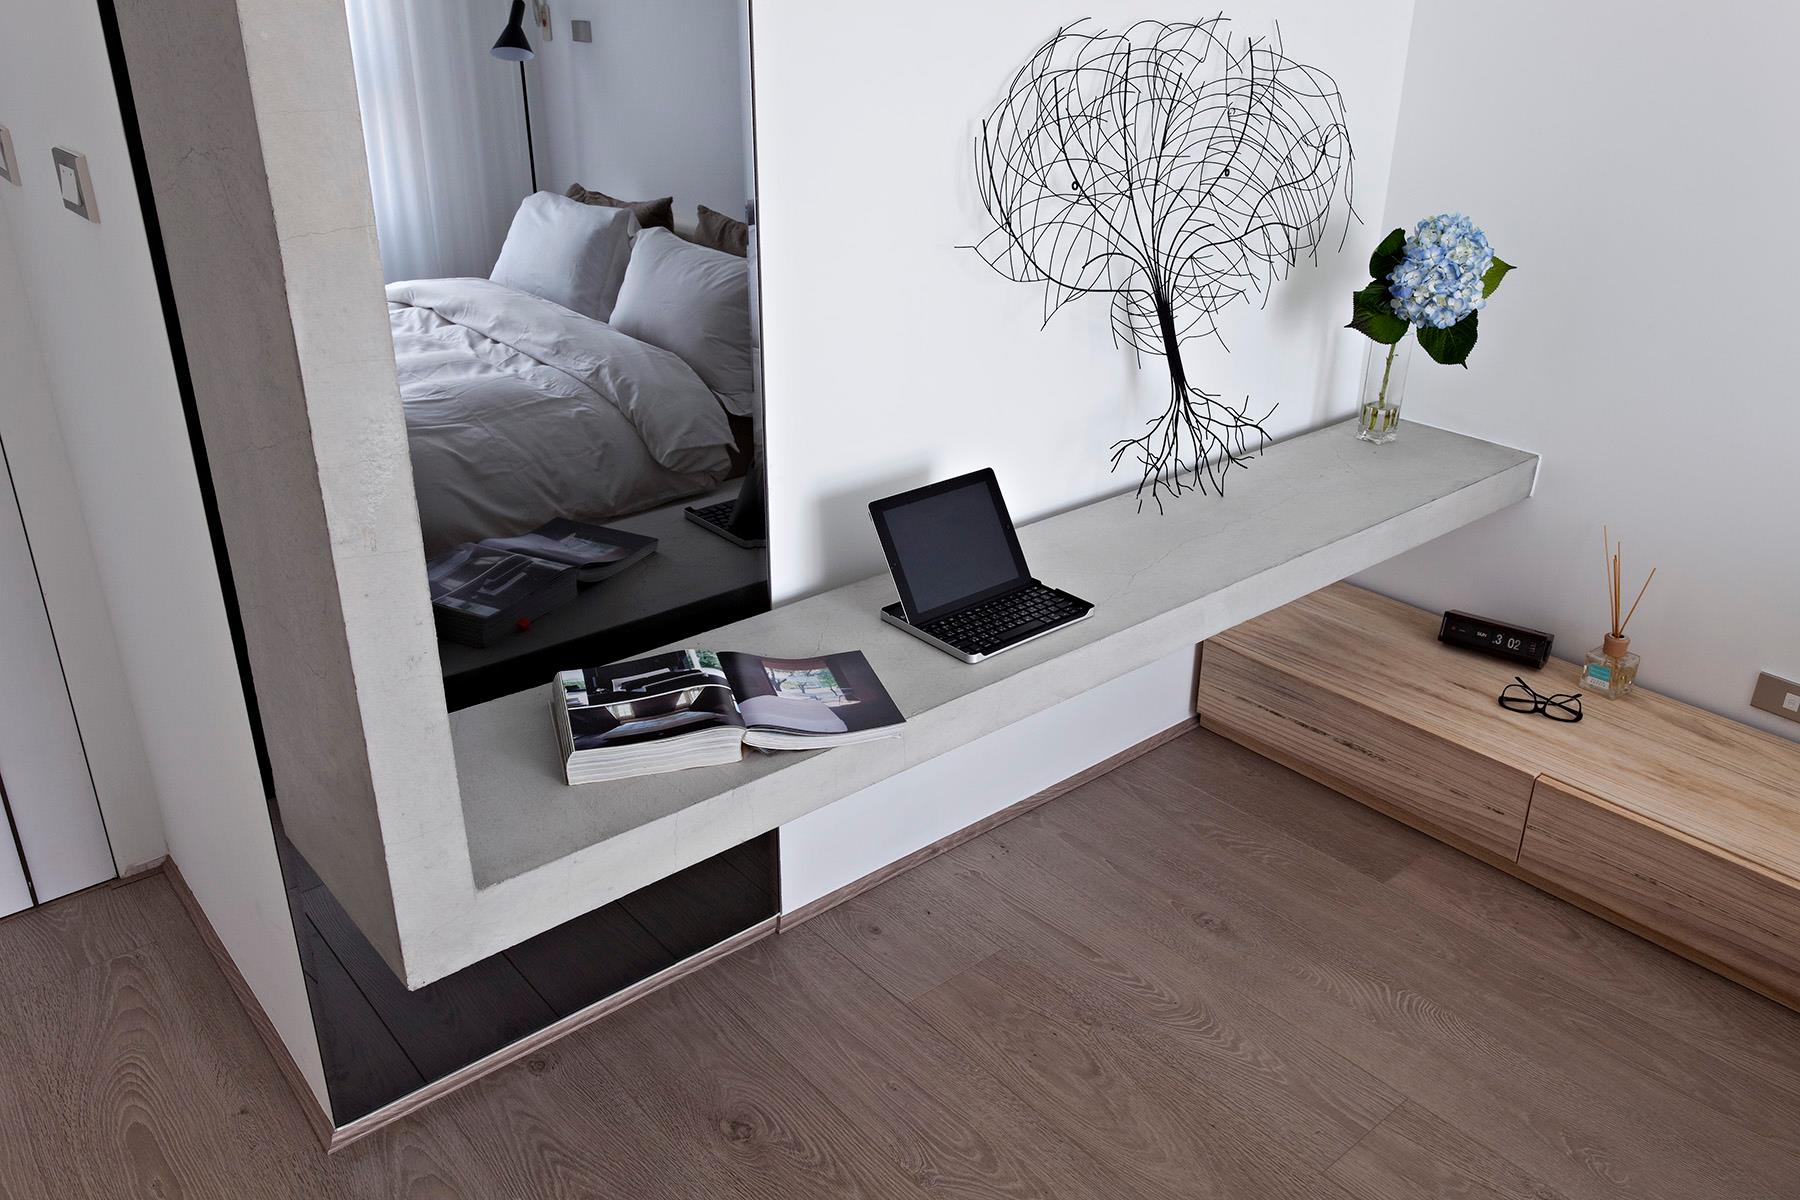 Floor Shelves For Bedroom Contemporary Bedroom Shelving Interior Design Ideas